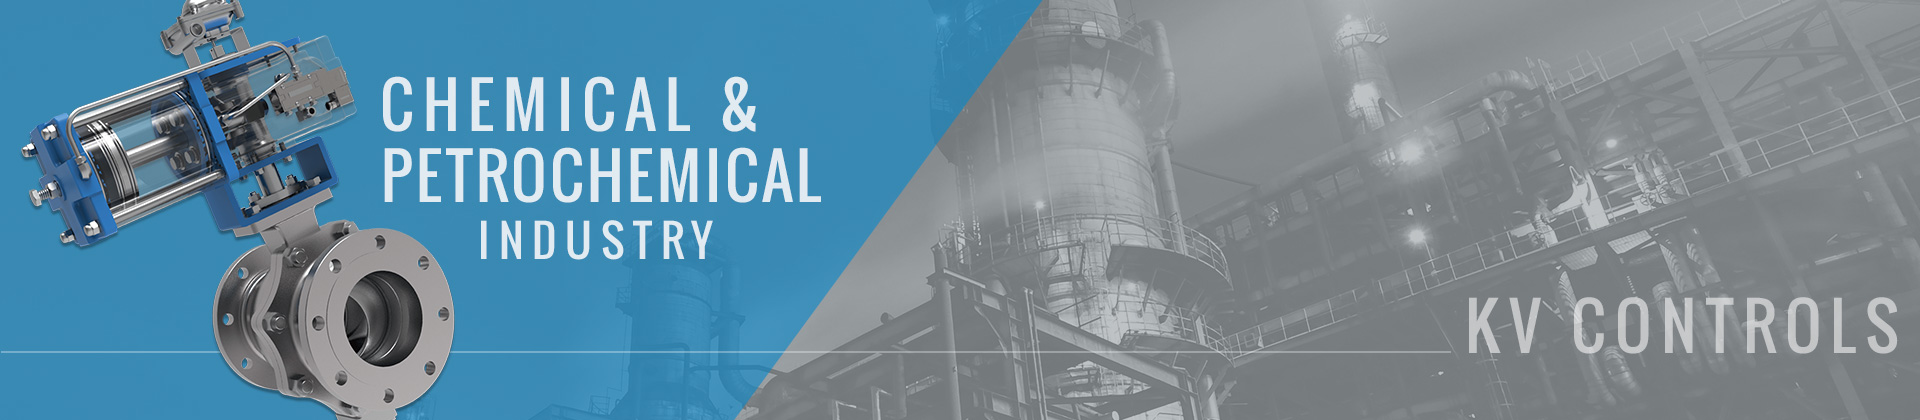 chemical--petrochemical-industry-moving-banner-home.jpg